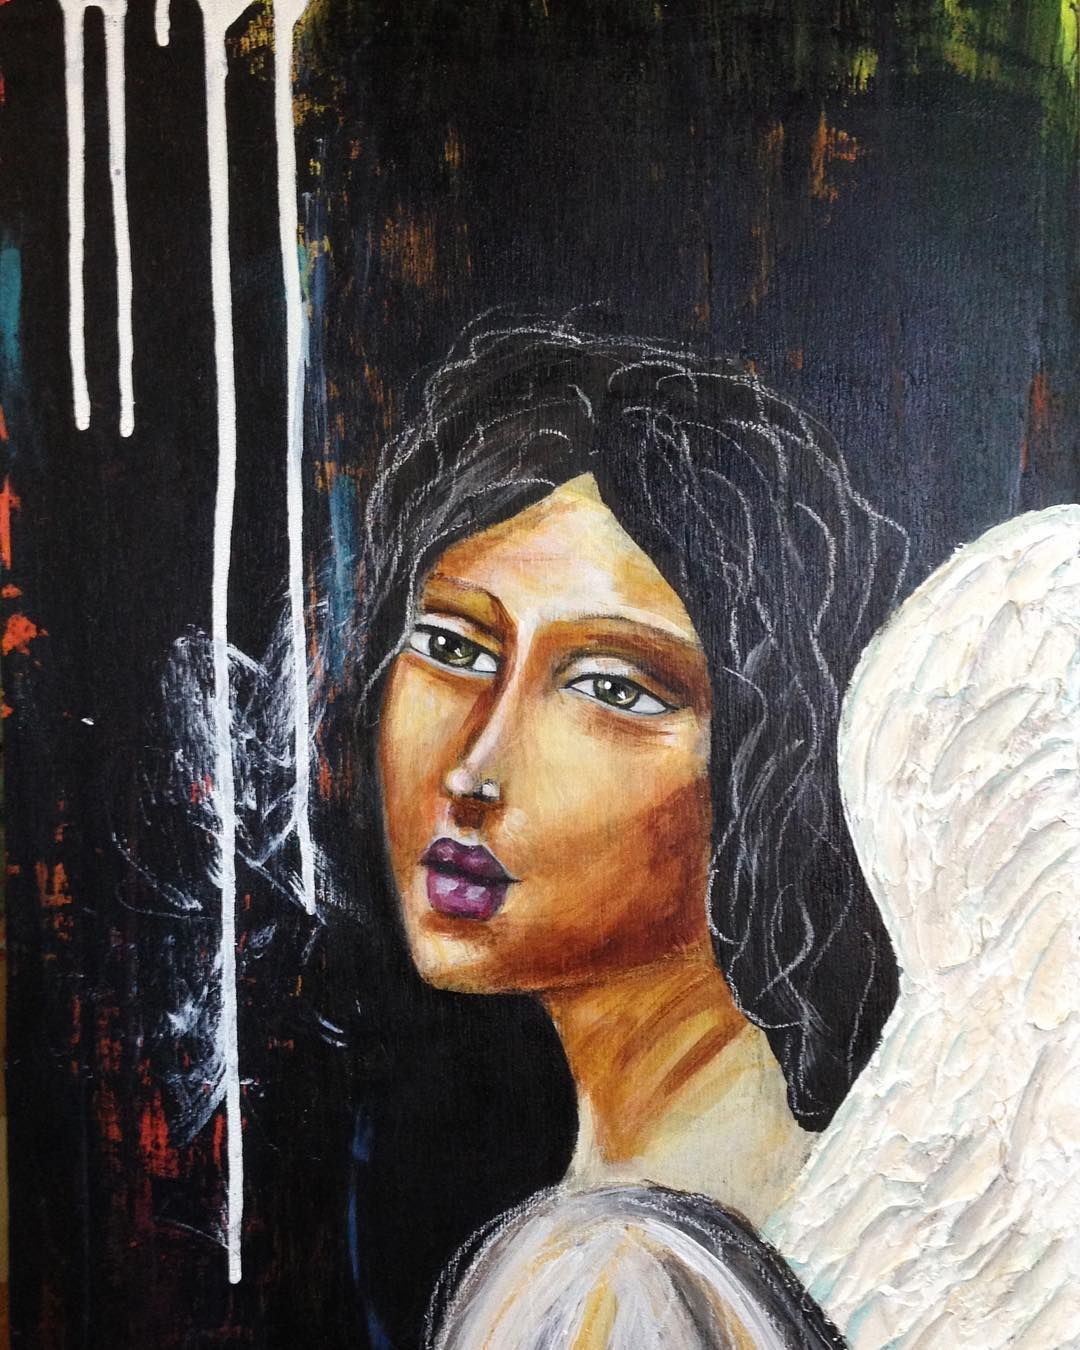 She is done and available! So happy with how the wings came out. Raised texture.  #mixedmedia #angel #davinci #artforsale #londonartist #irisimpressionsart #beabitmoreyou